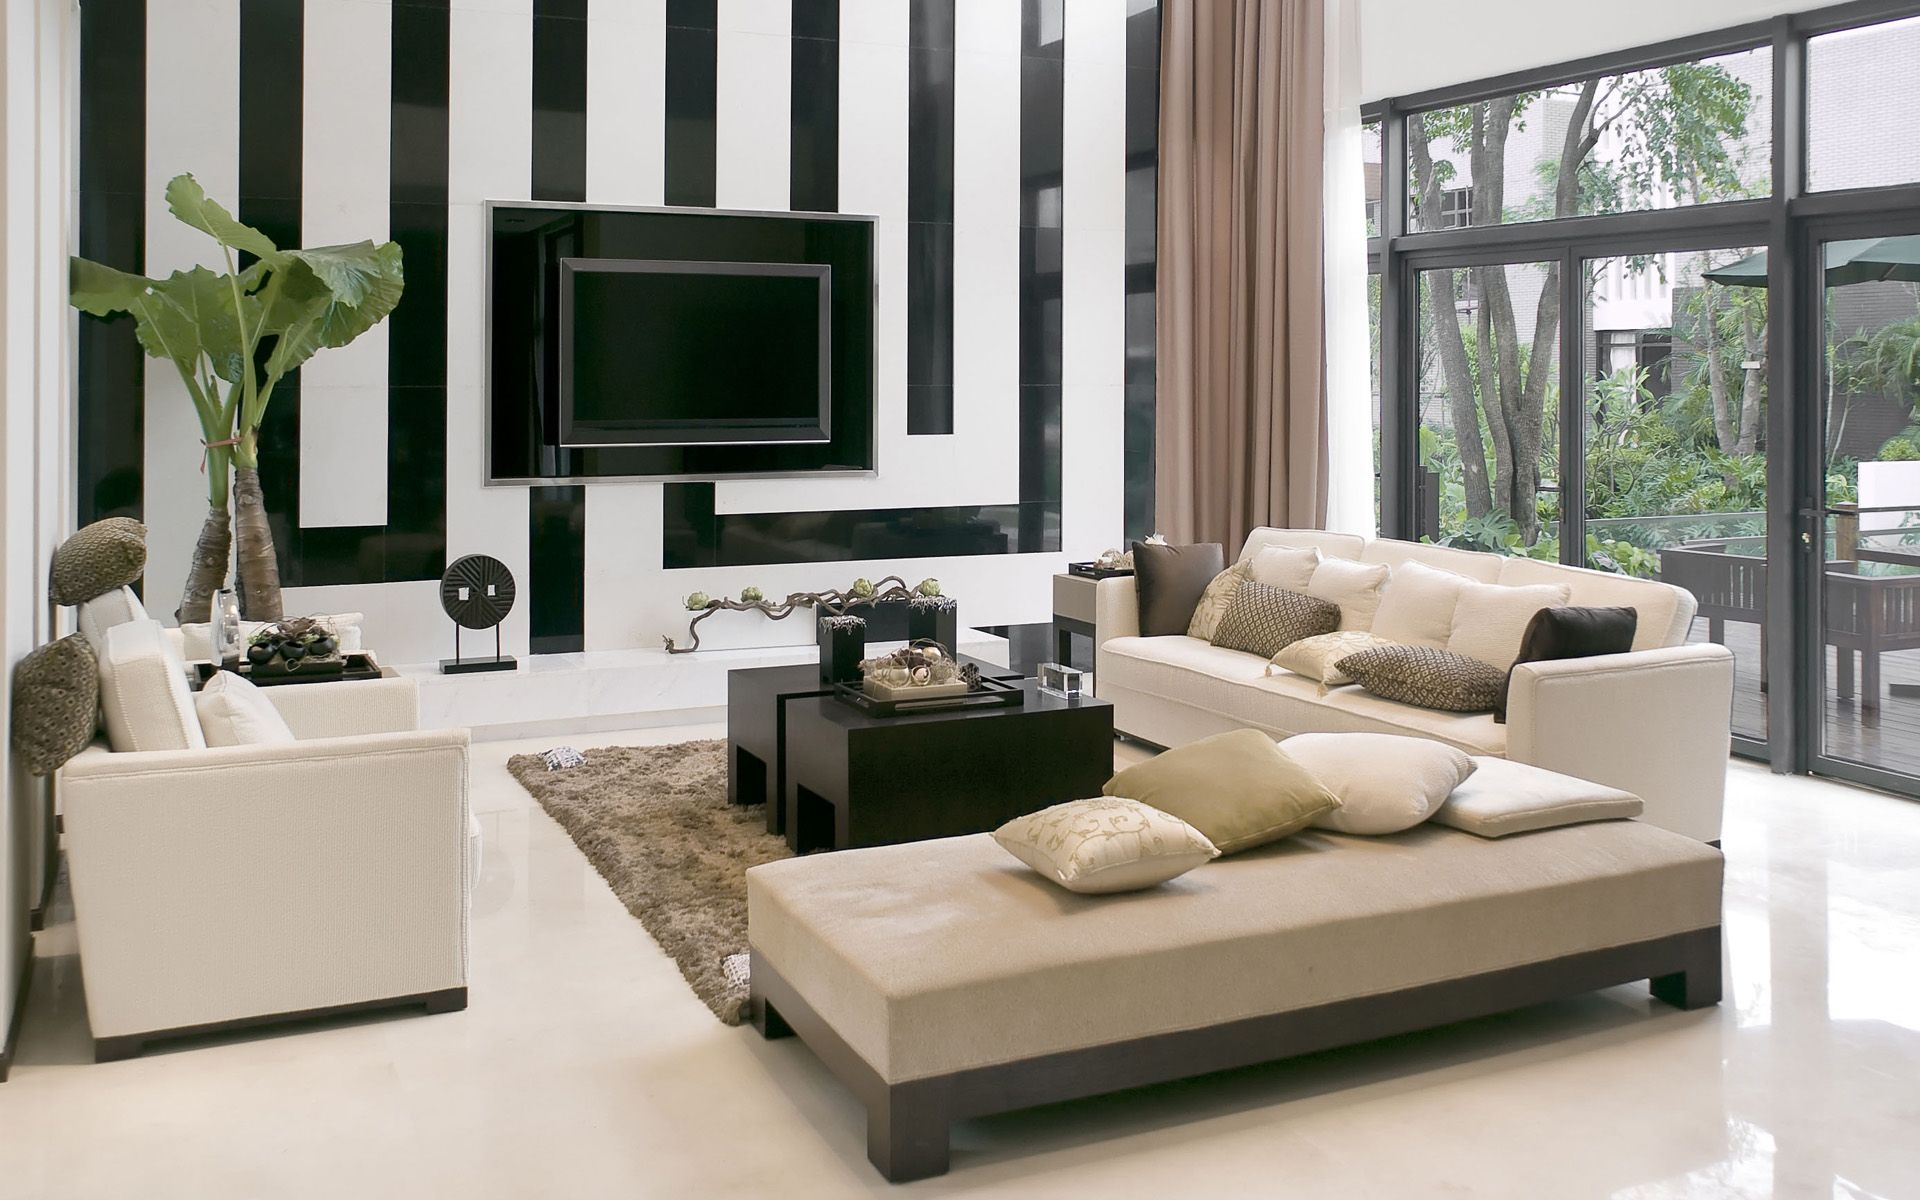 wonderful home furniture design. interior gorgeous home design ideas with marvelous beige sofas and unique black wood coffe table also wonderful tv wall units on the white furniture e